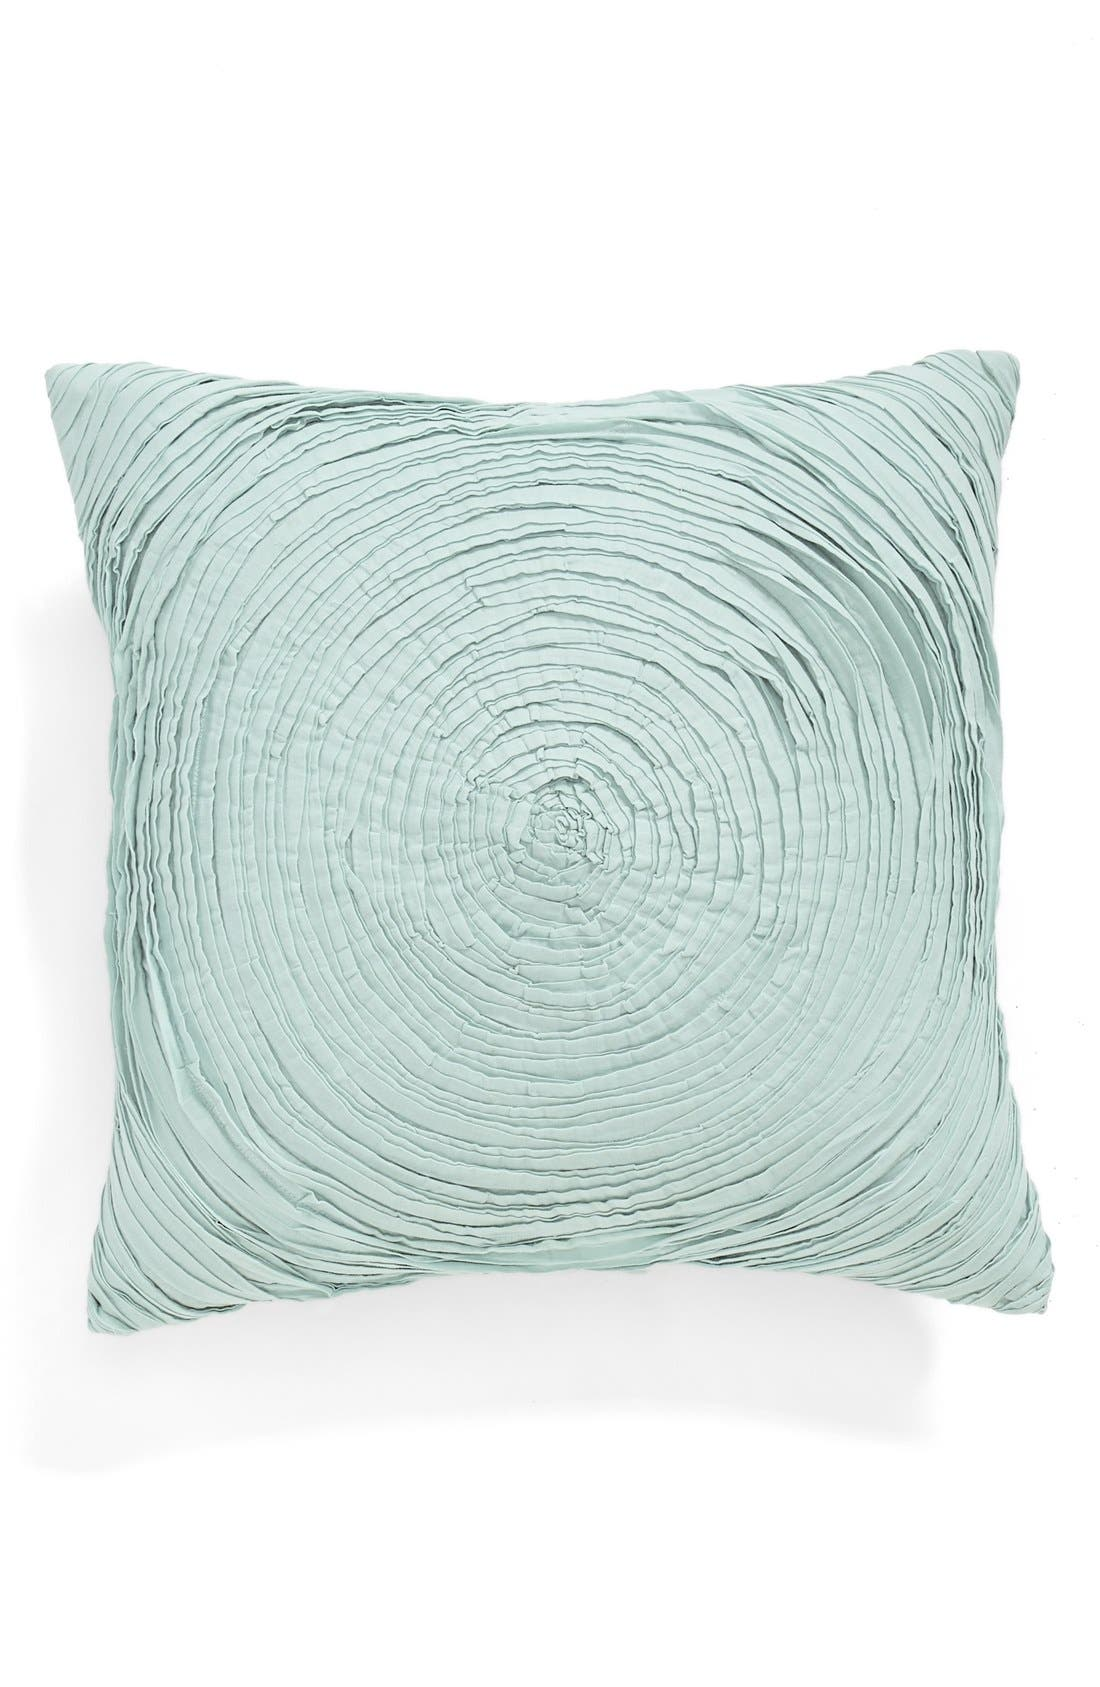 'Full Bloom' Accent Pillow,                             Main thumbnail 1, color,                             Teal Mist